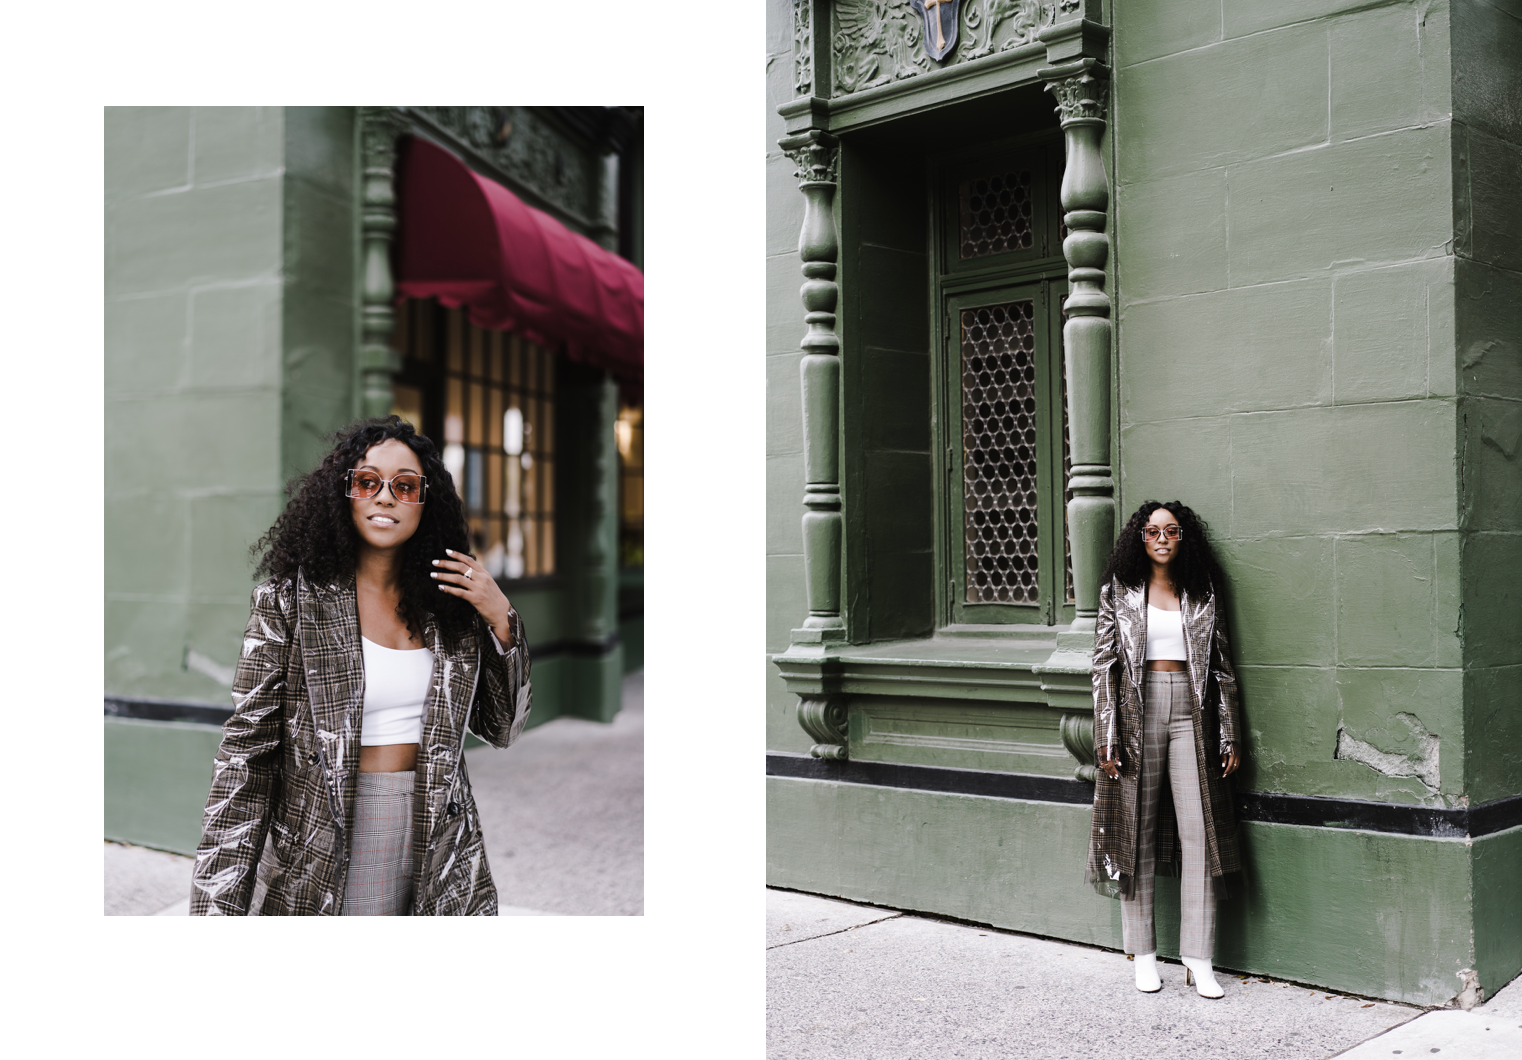 CALVIN KLEIN 205W39NYC  coat (Shop it  here ),  SKIN  cropped bra (Shop it  here ),  STELLA MCCARTNEY  trousers (Shop it  here ),  CALVIN KLEIN 205W39NYC  Bi-colour sunglasses (Shop it  here ),  VETEMENTS  ankle boots (Shop it  here )